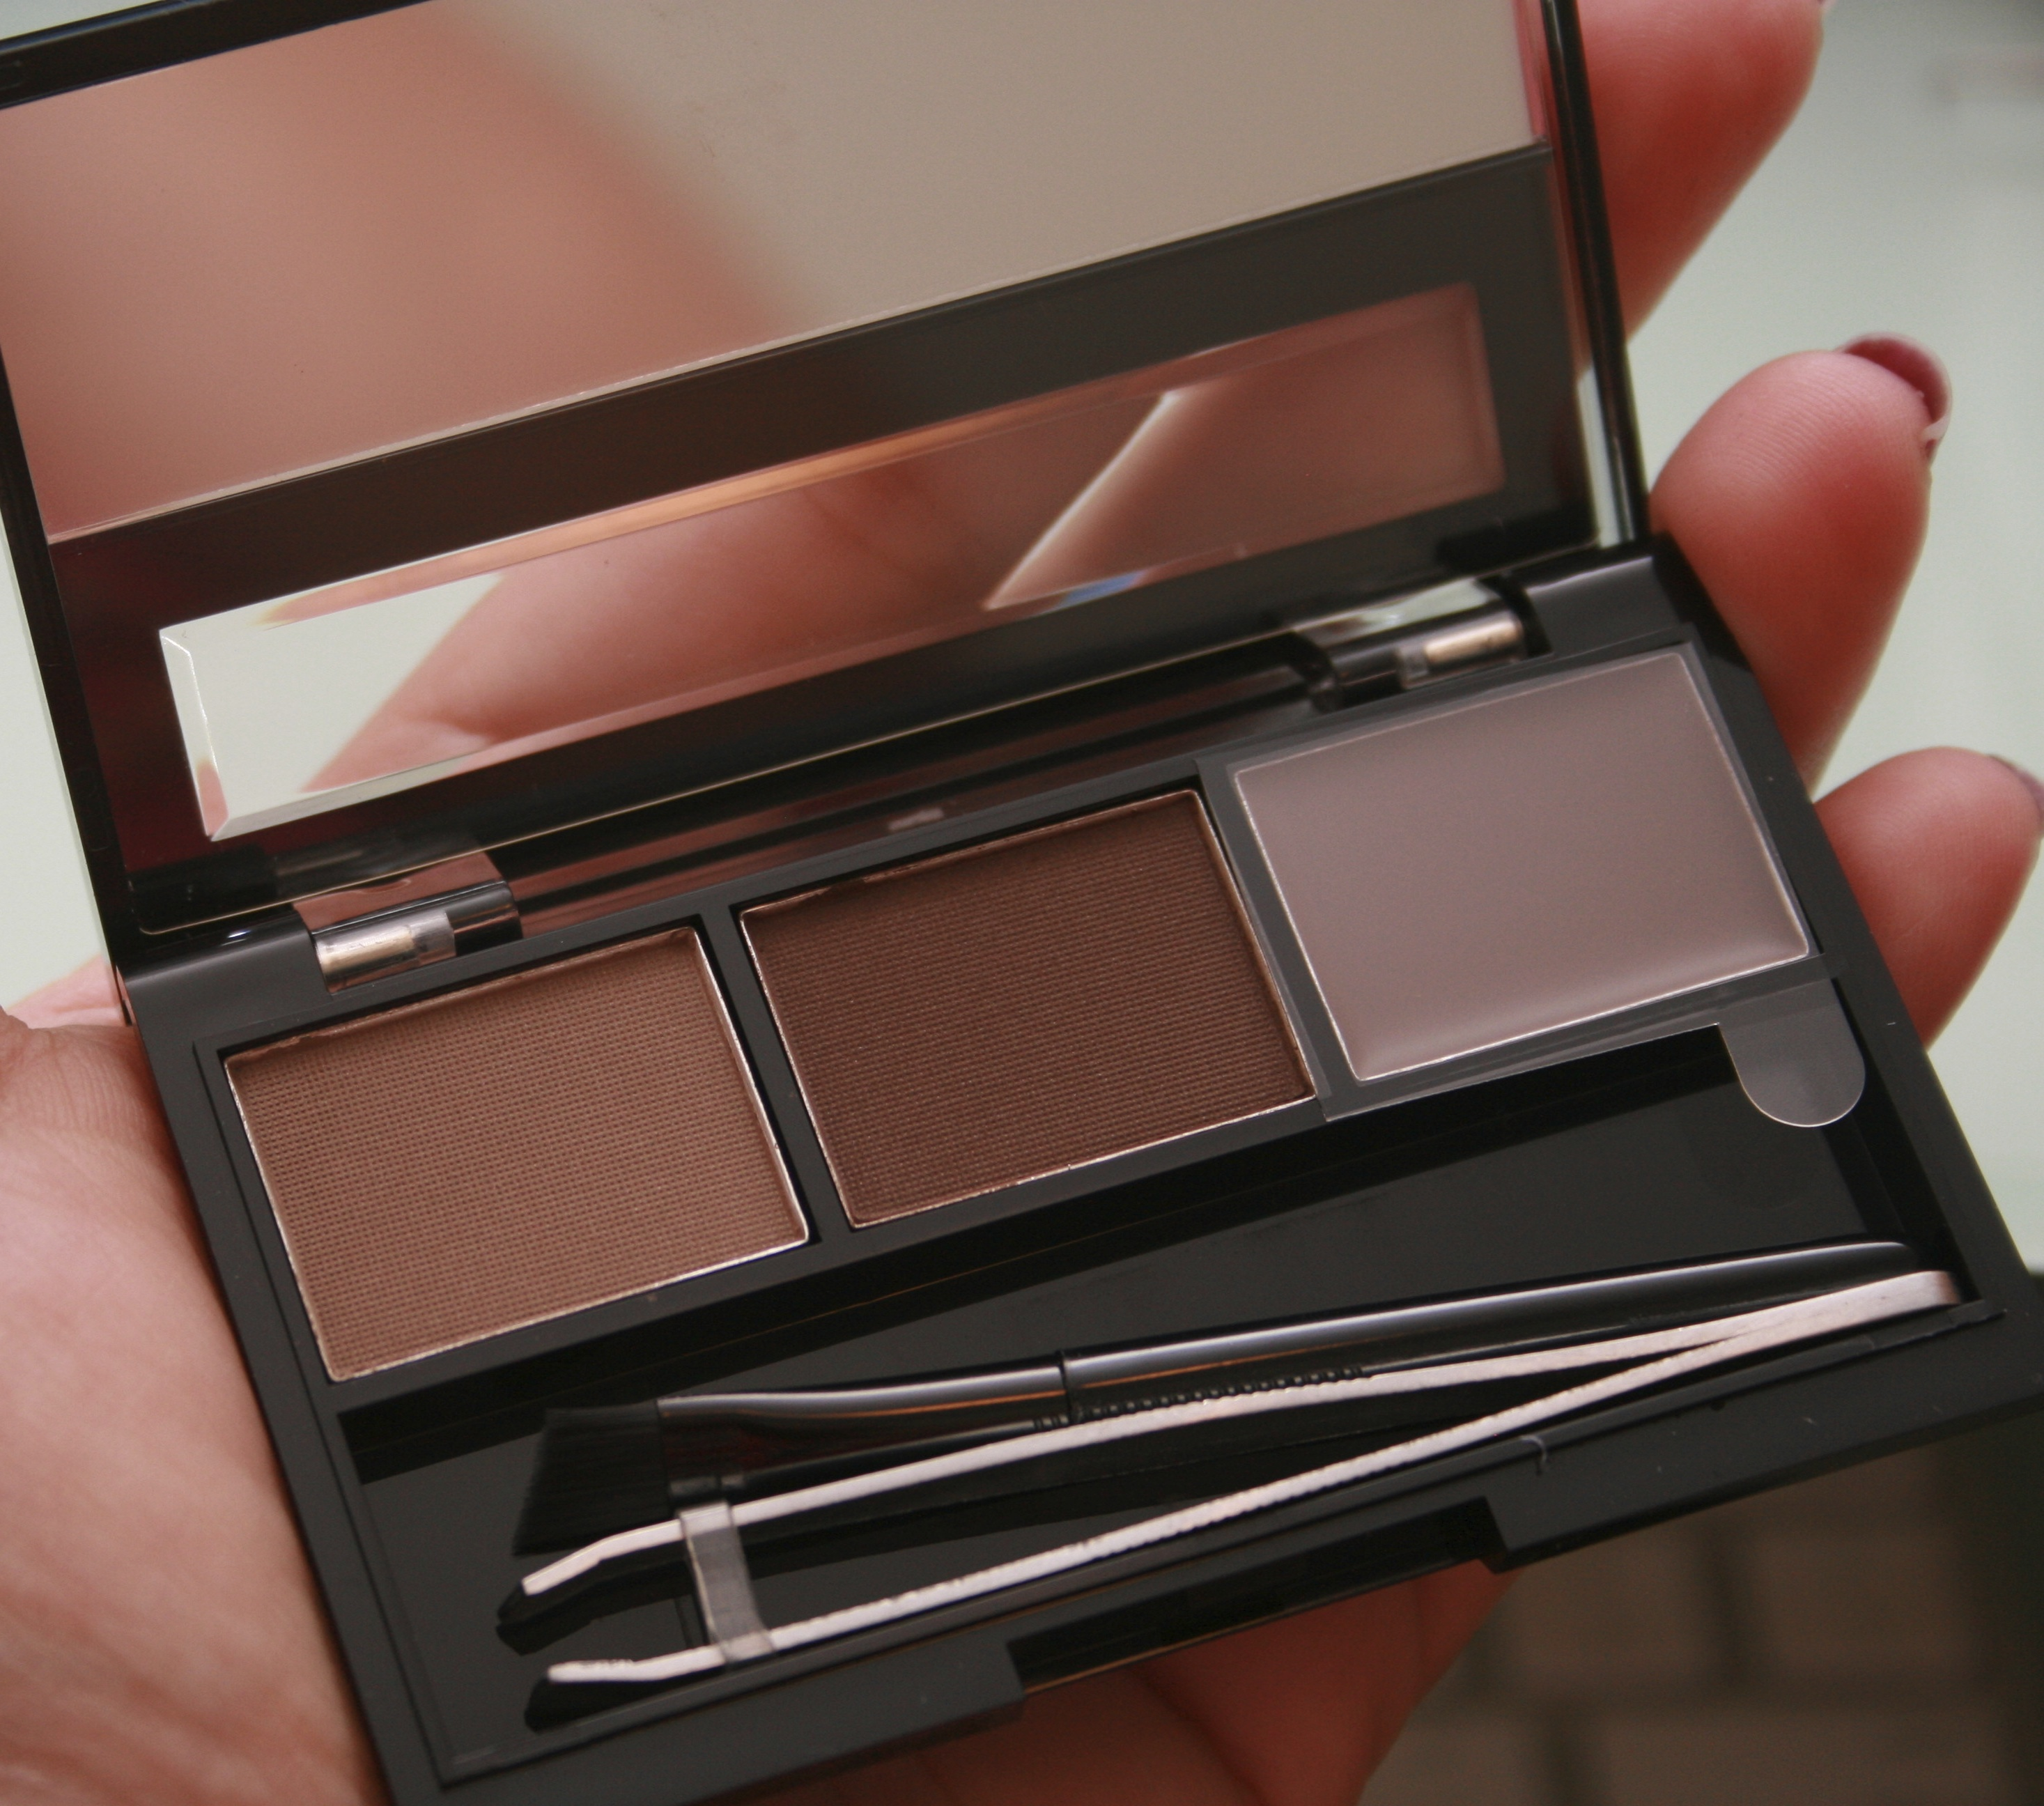 Cheap Tuesday Review: Face of Australia Eyebrow Kit | Makeup By Shalini